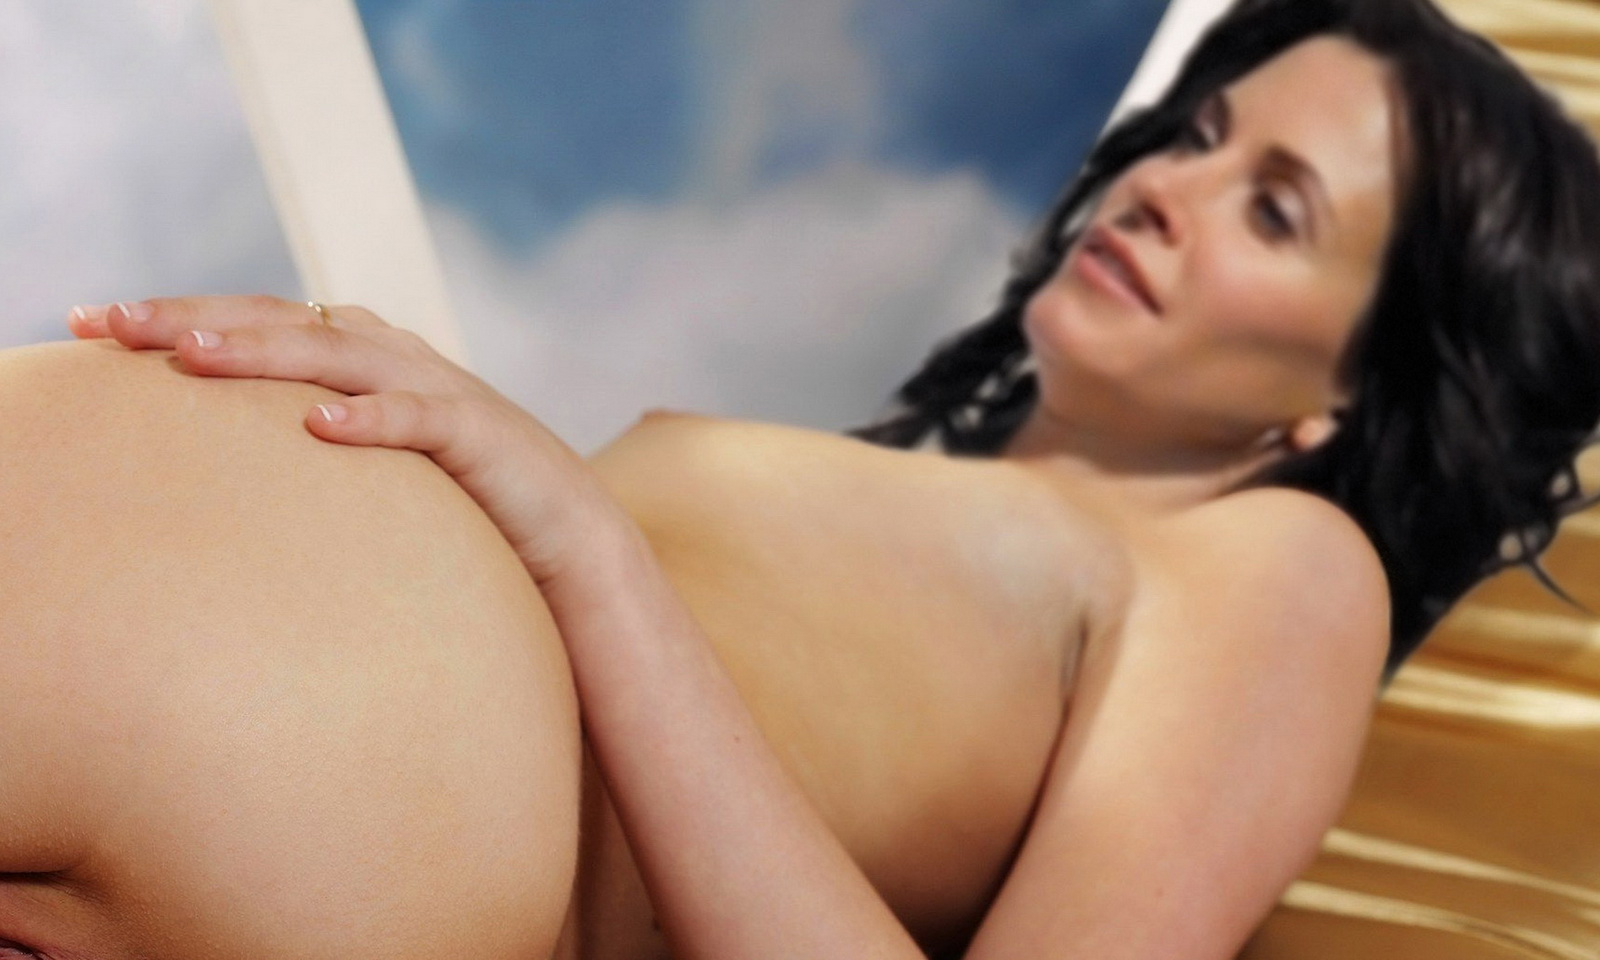 Greatness Courteney Cox Tied Up Nude Naked Fuckbook Nude Videos